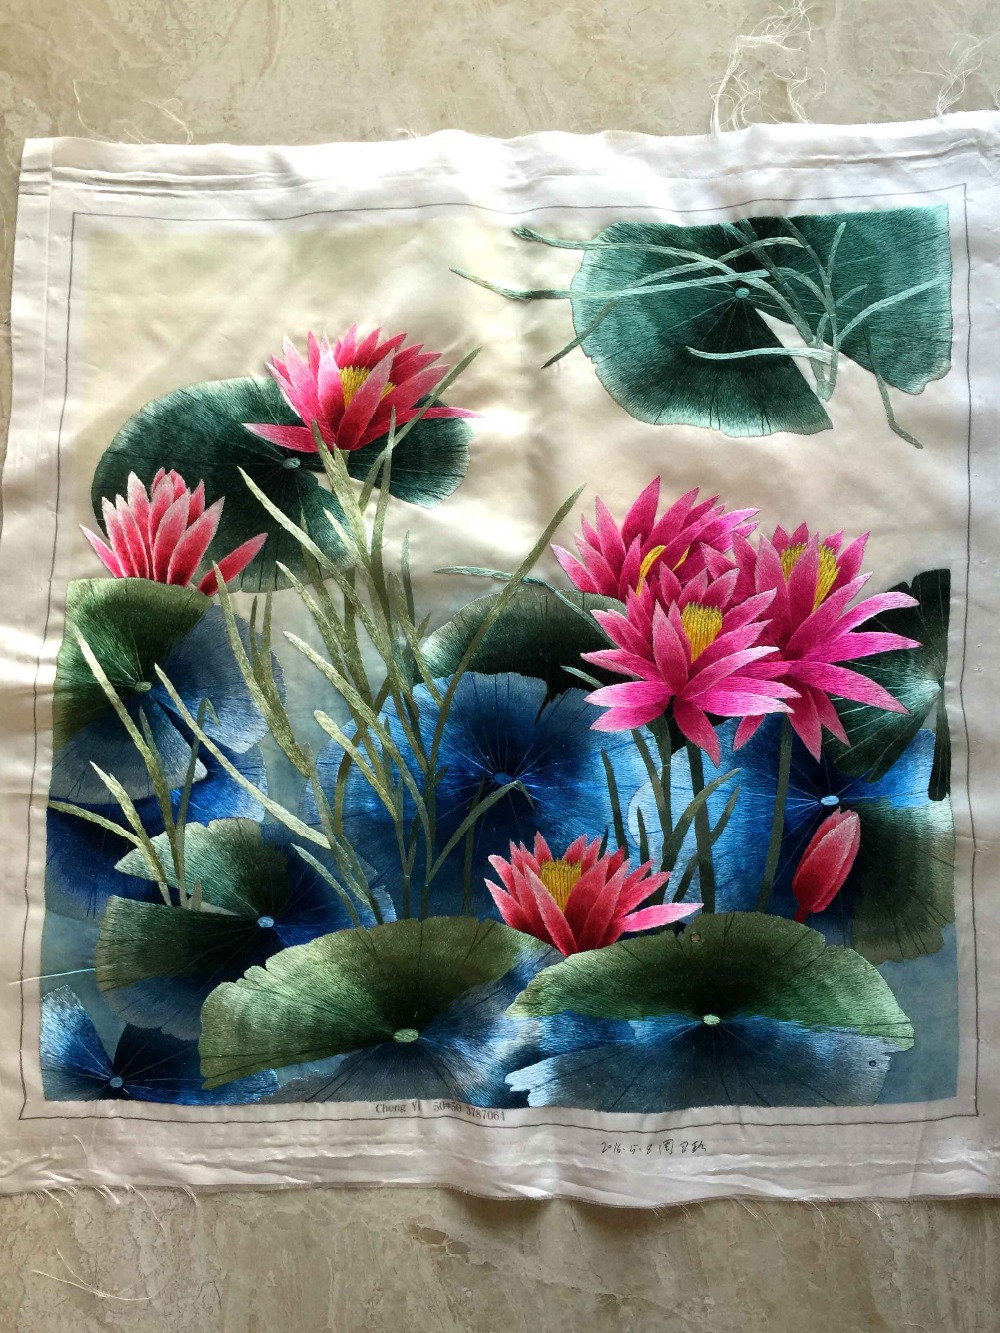 Handmade Pure Silk Embroidery Suzhou China Traditional Arts Decorations / Export to Japan High quality Gorgeous Adornments